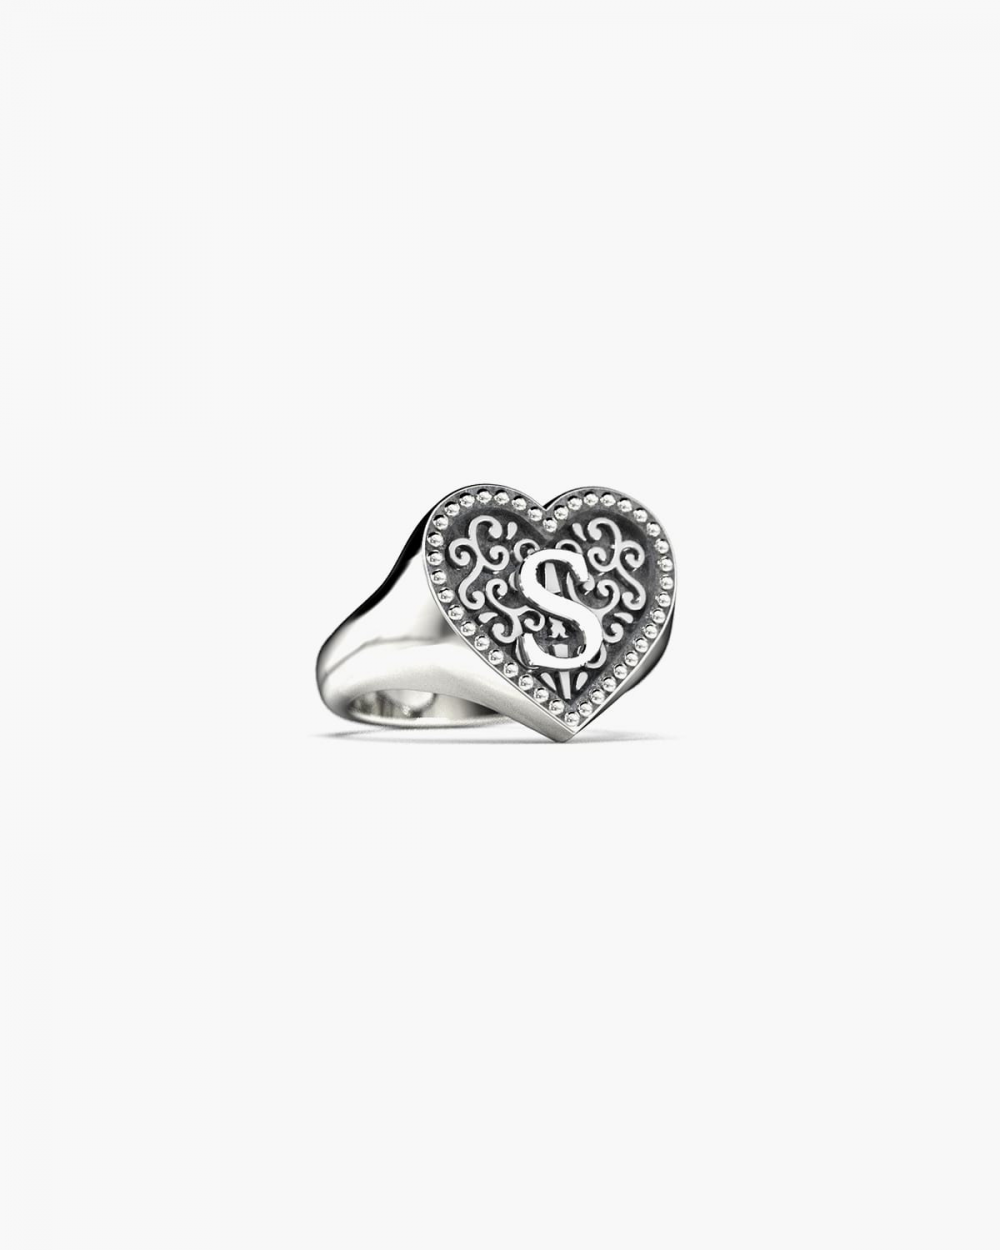 LETTER HEART SIGNET RING